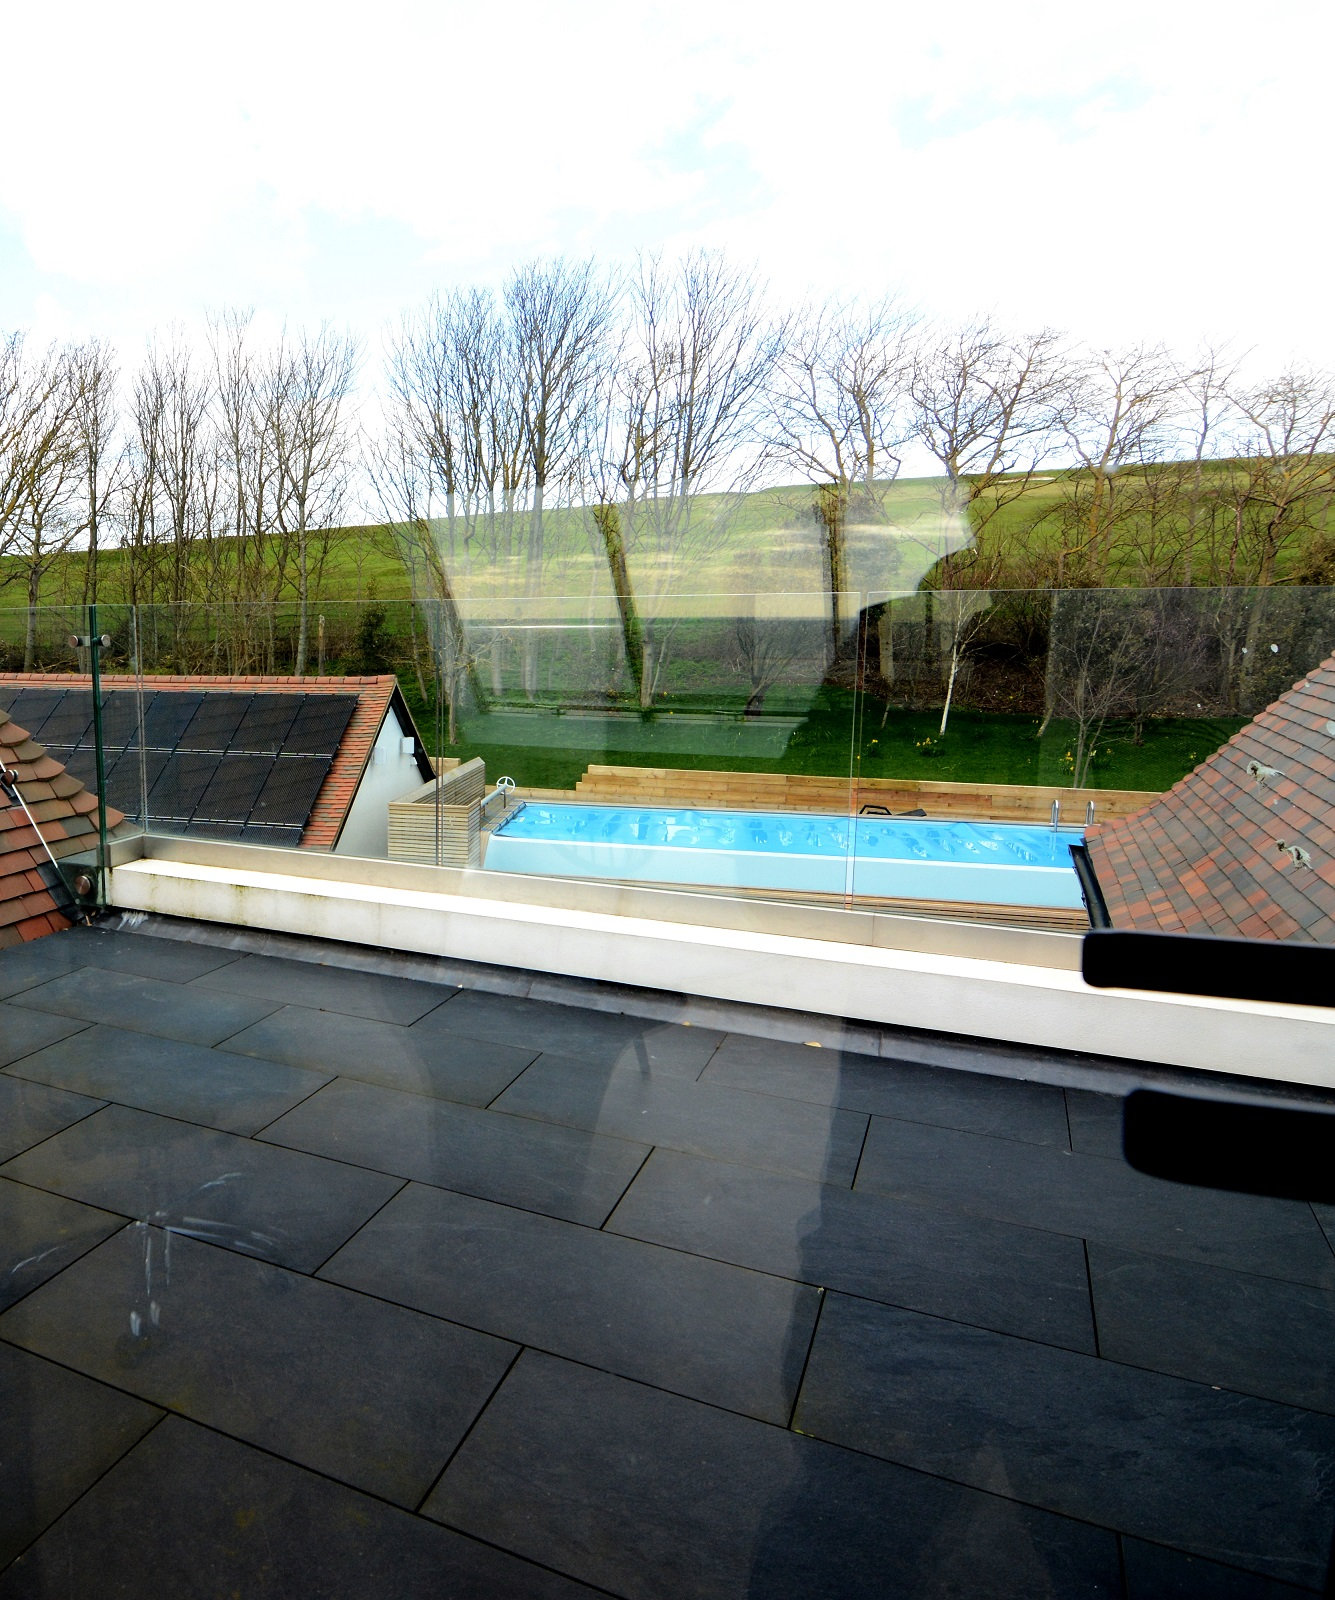 Glazed roof terrace looking over landscape